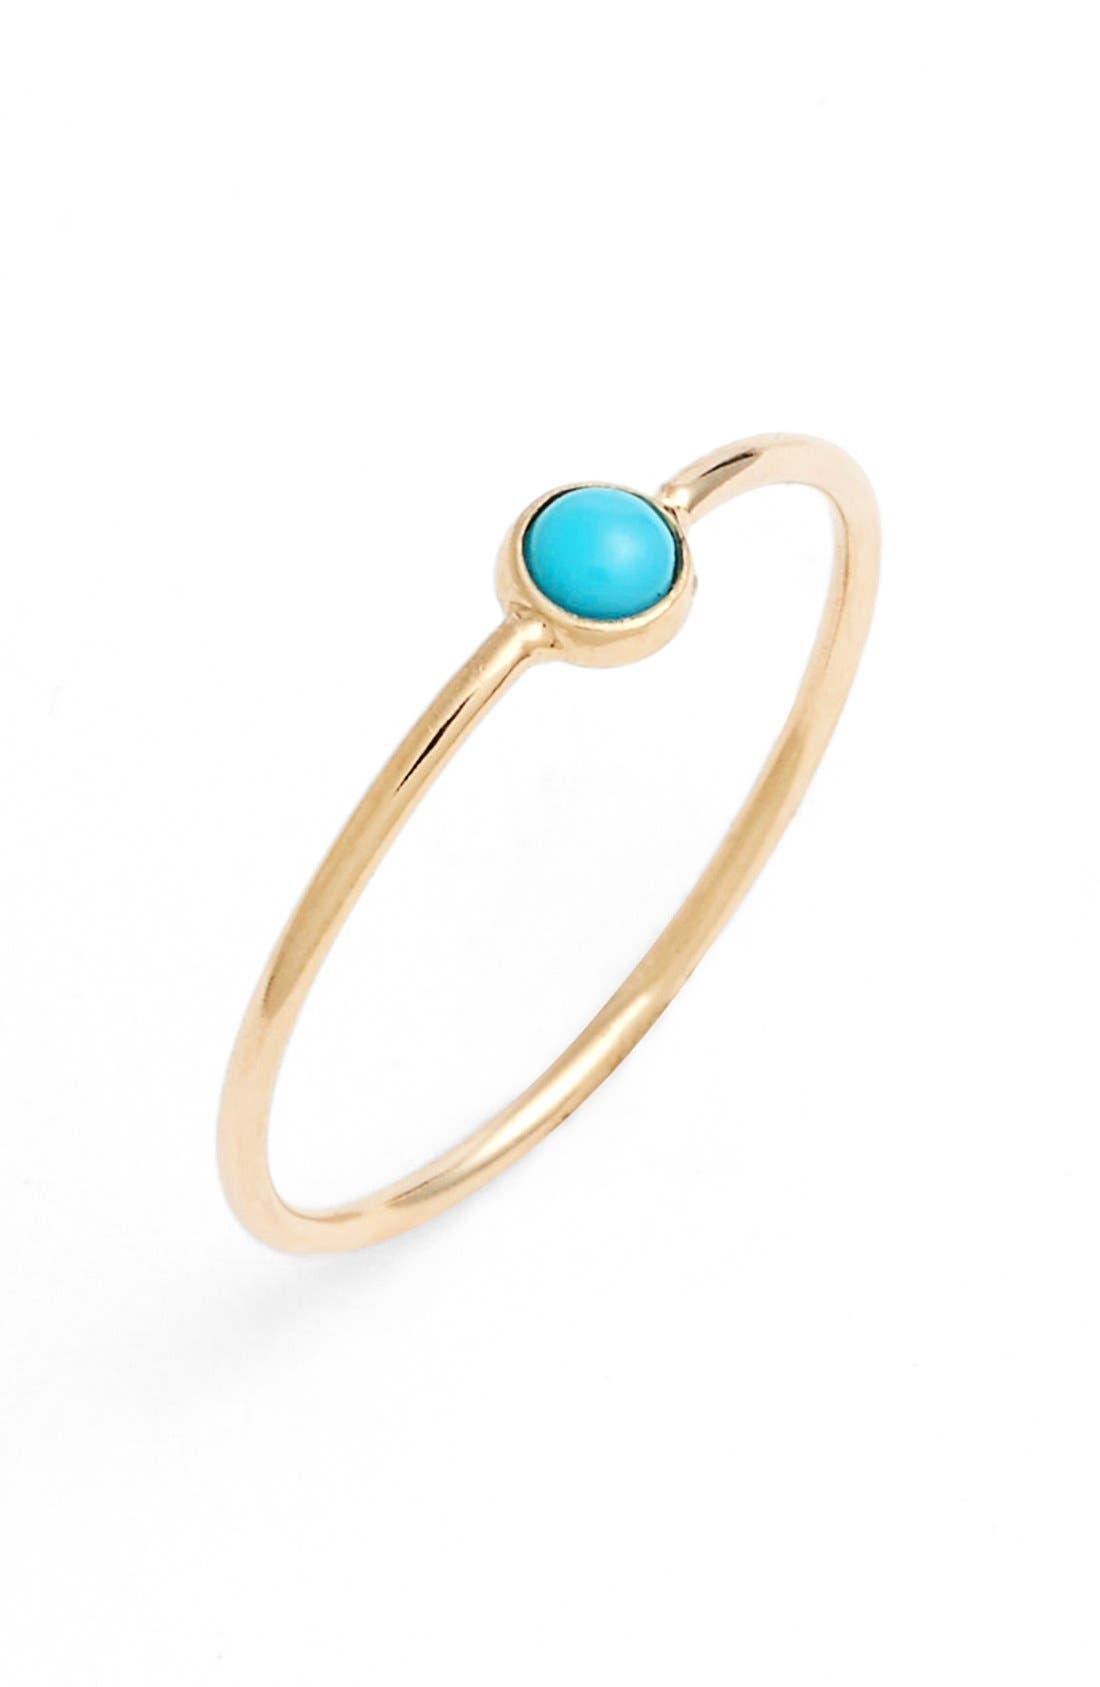 Turquoise Stacking Ring,                             Main thumbnail 1, color,                             TURQUOISE